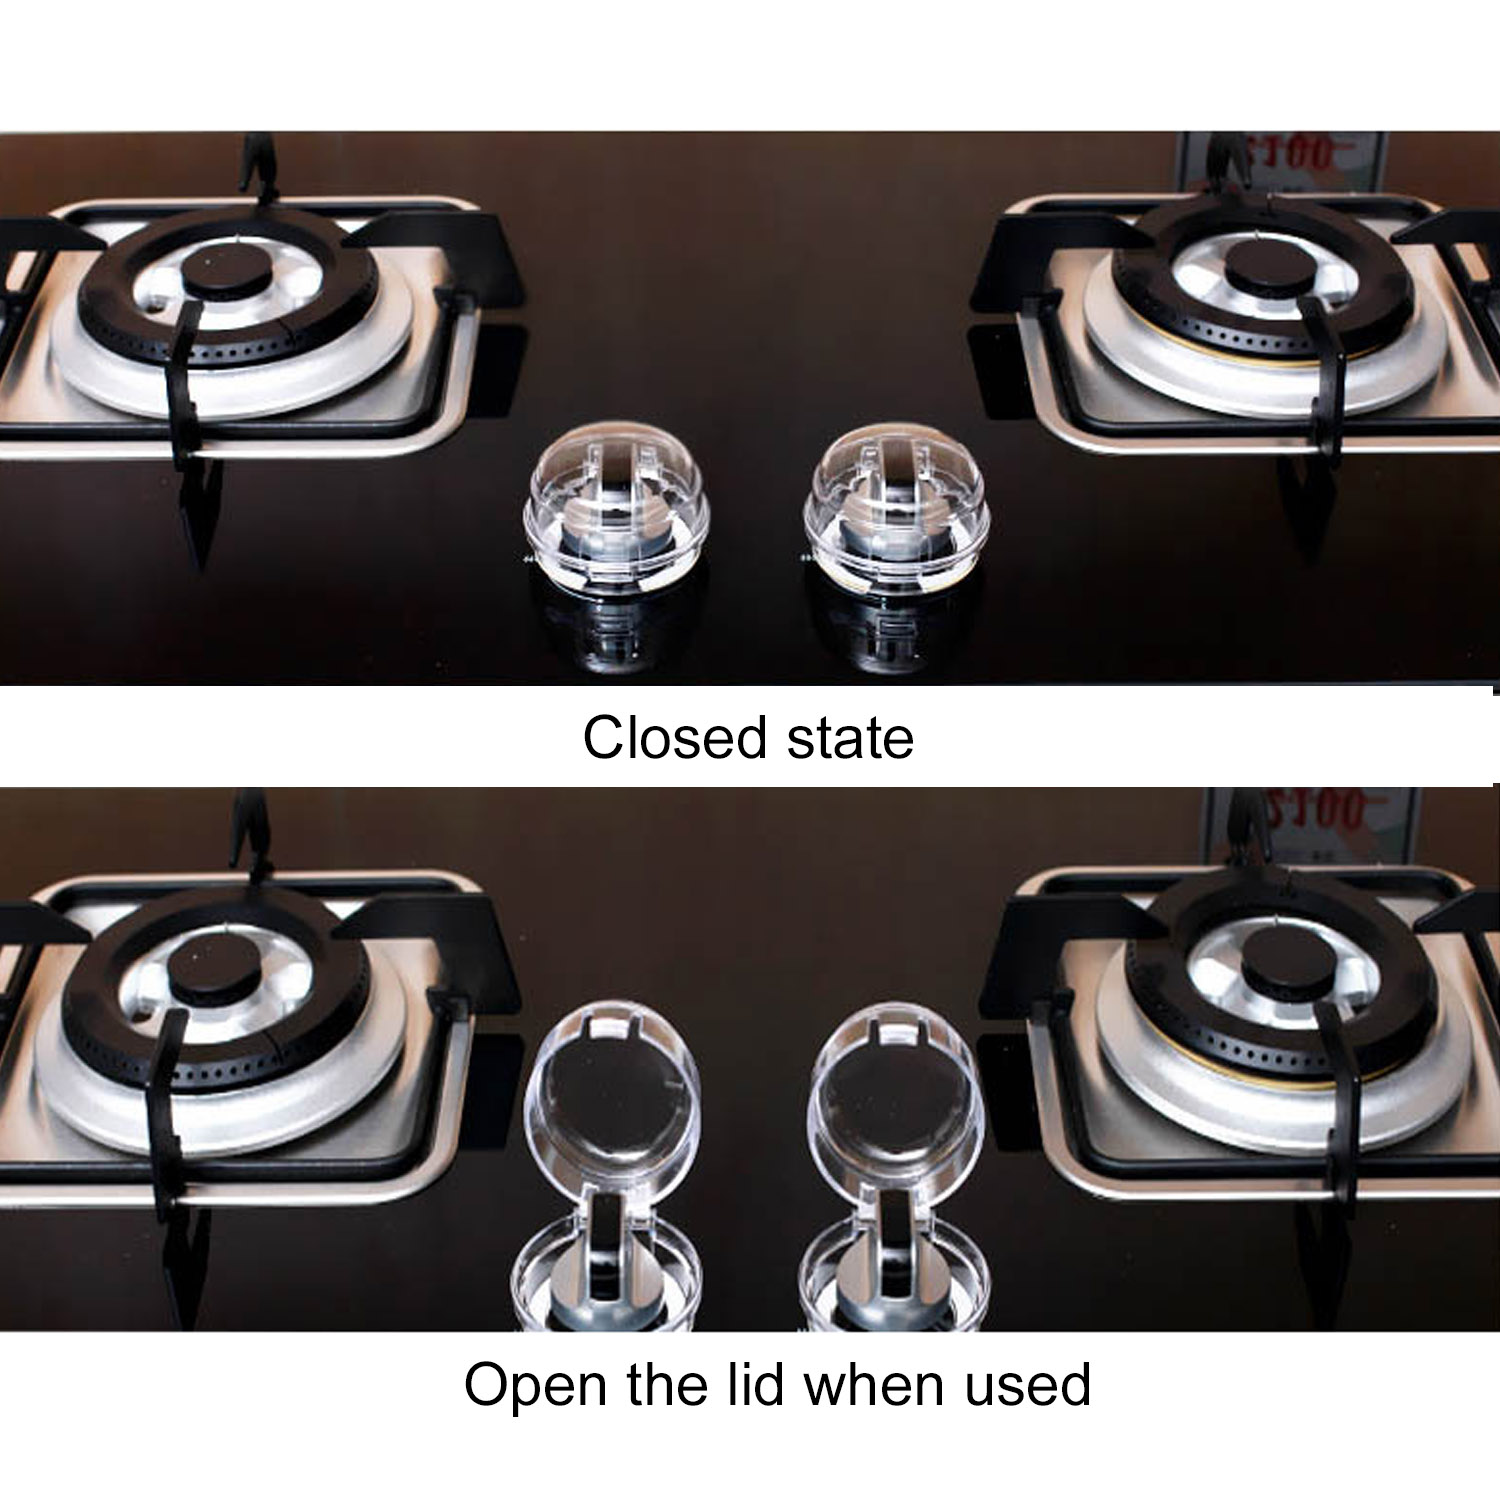 6 Pcs Kitchen Gas Stove Knob Covers Oven Knobs Protector Child Safety Locks